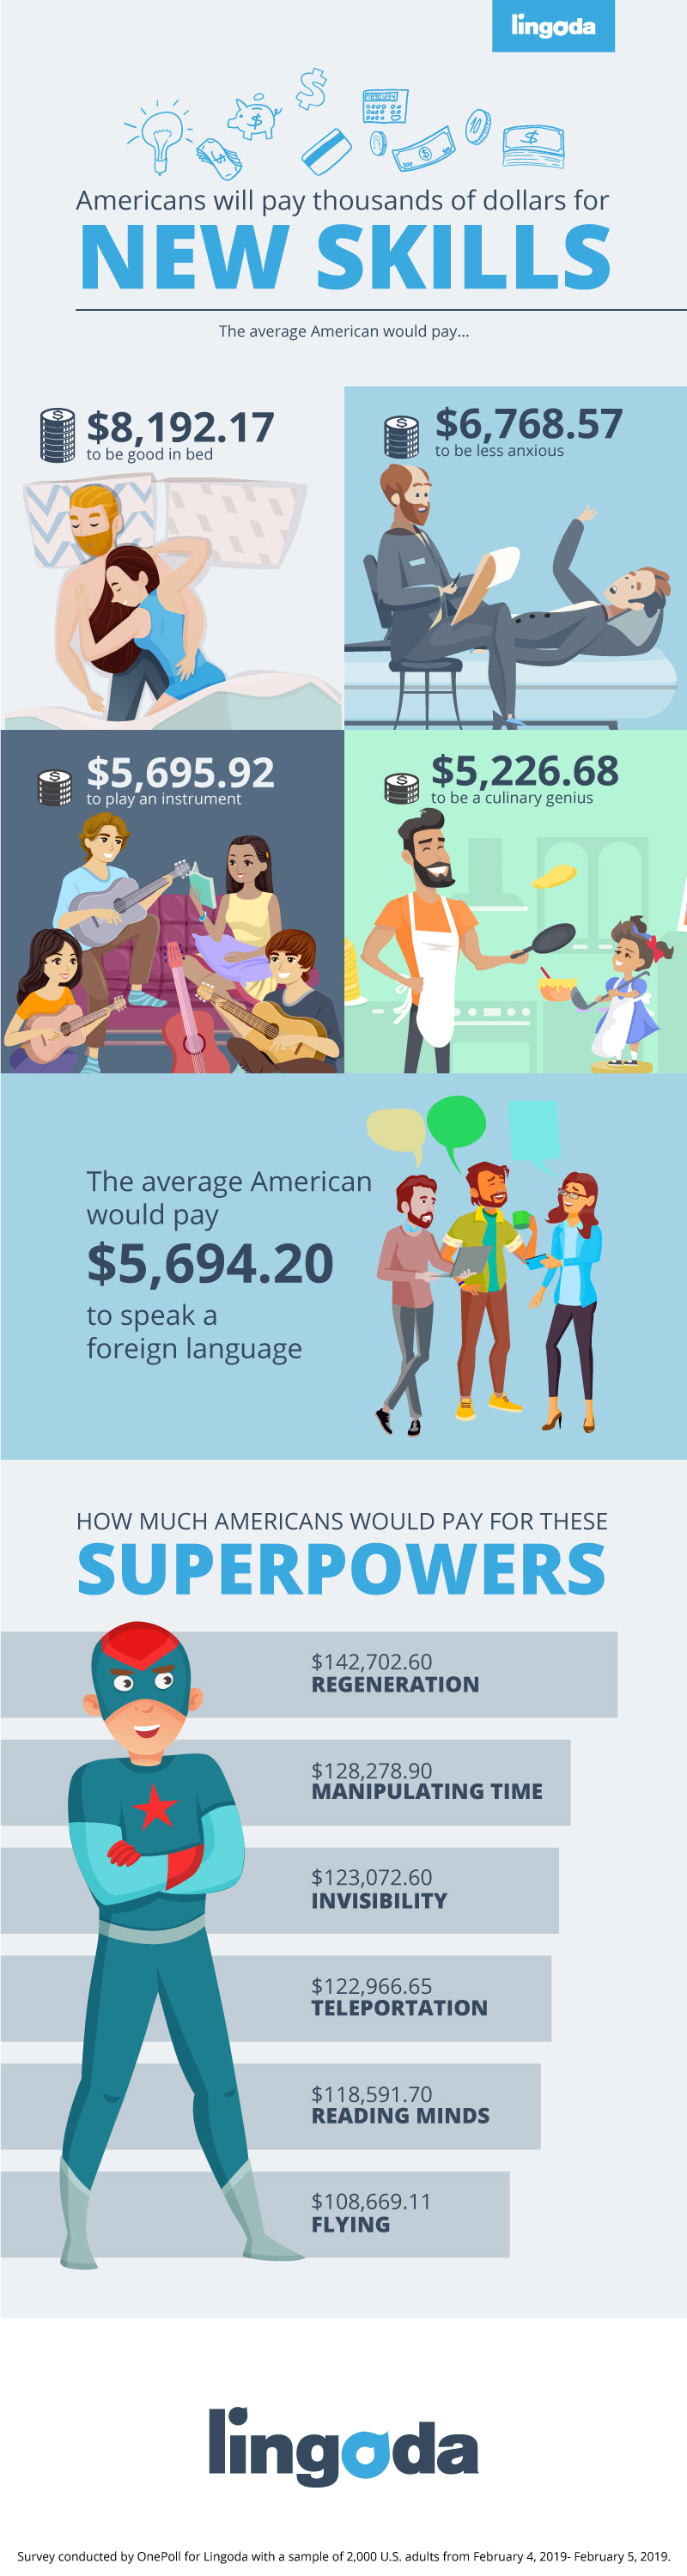 Infographic ranking top new skills Americans want to learn and how much money they'd pay to get them